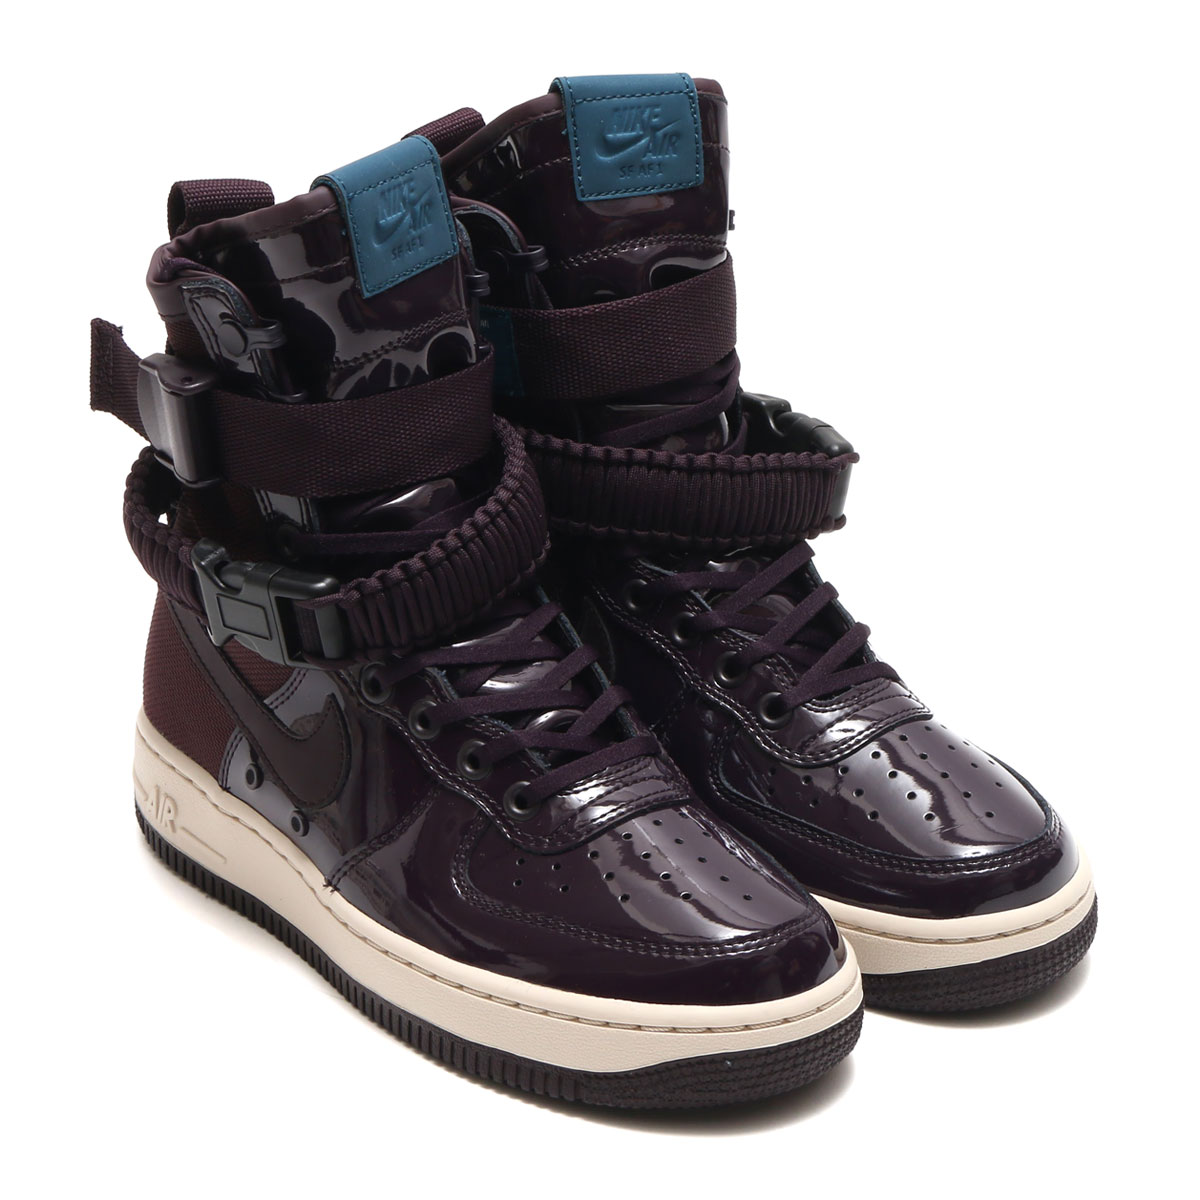 buy popular 08a55 646a2 NIKE WMNS SF AF1 SE PRM (Nike women special field air force 1 SE premium)  (PORT WINEPORT WINE-SPACE BLUE) 17HO-S